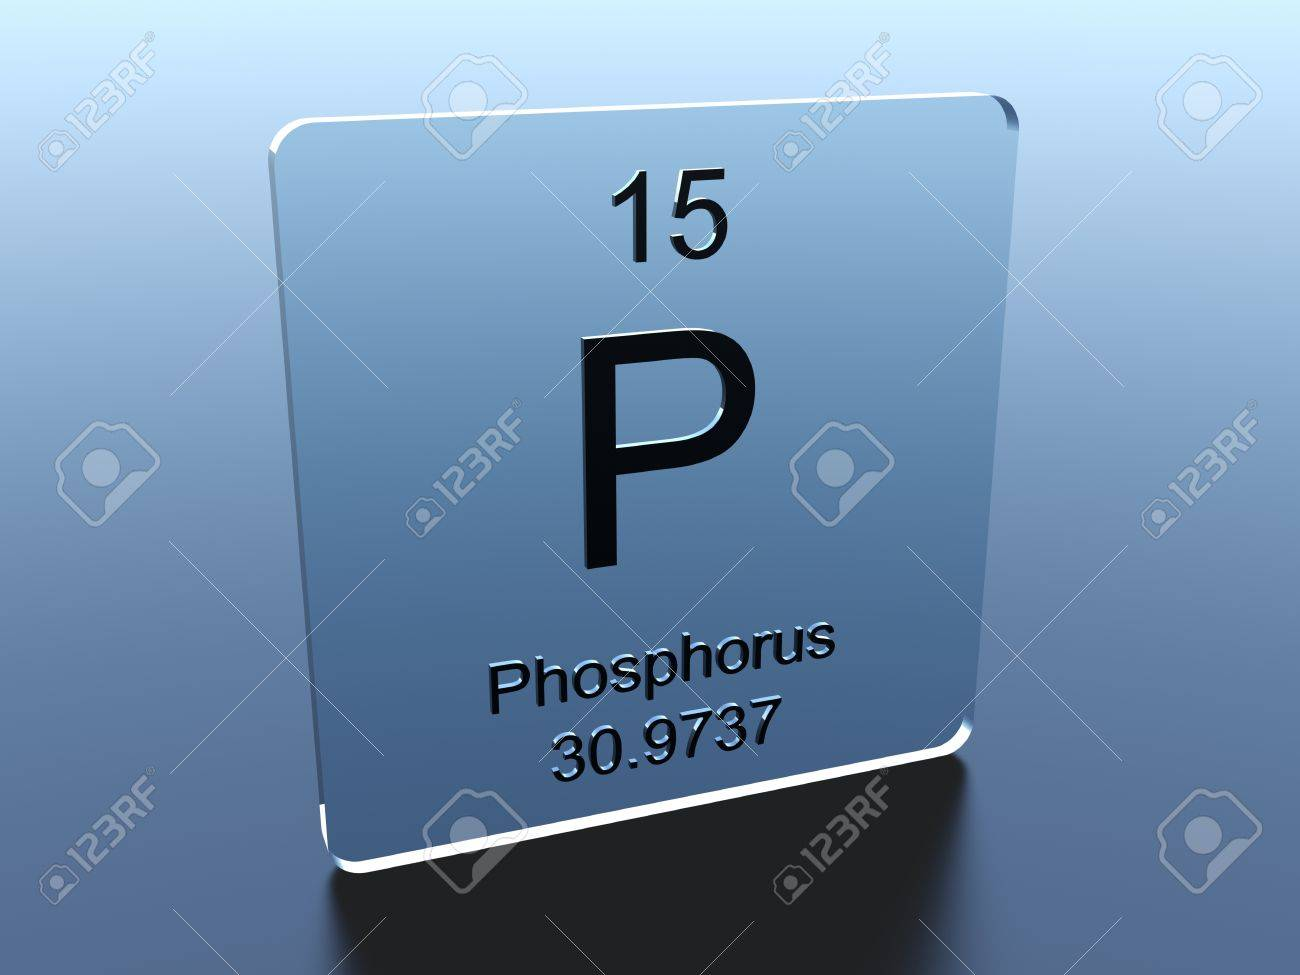 Phosphorus Symbol On A Glass Square Stock Photo Picture And Royalty